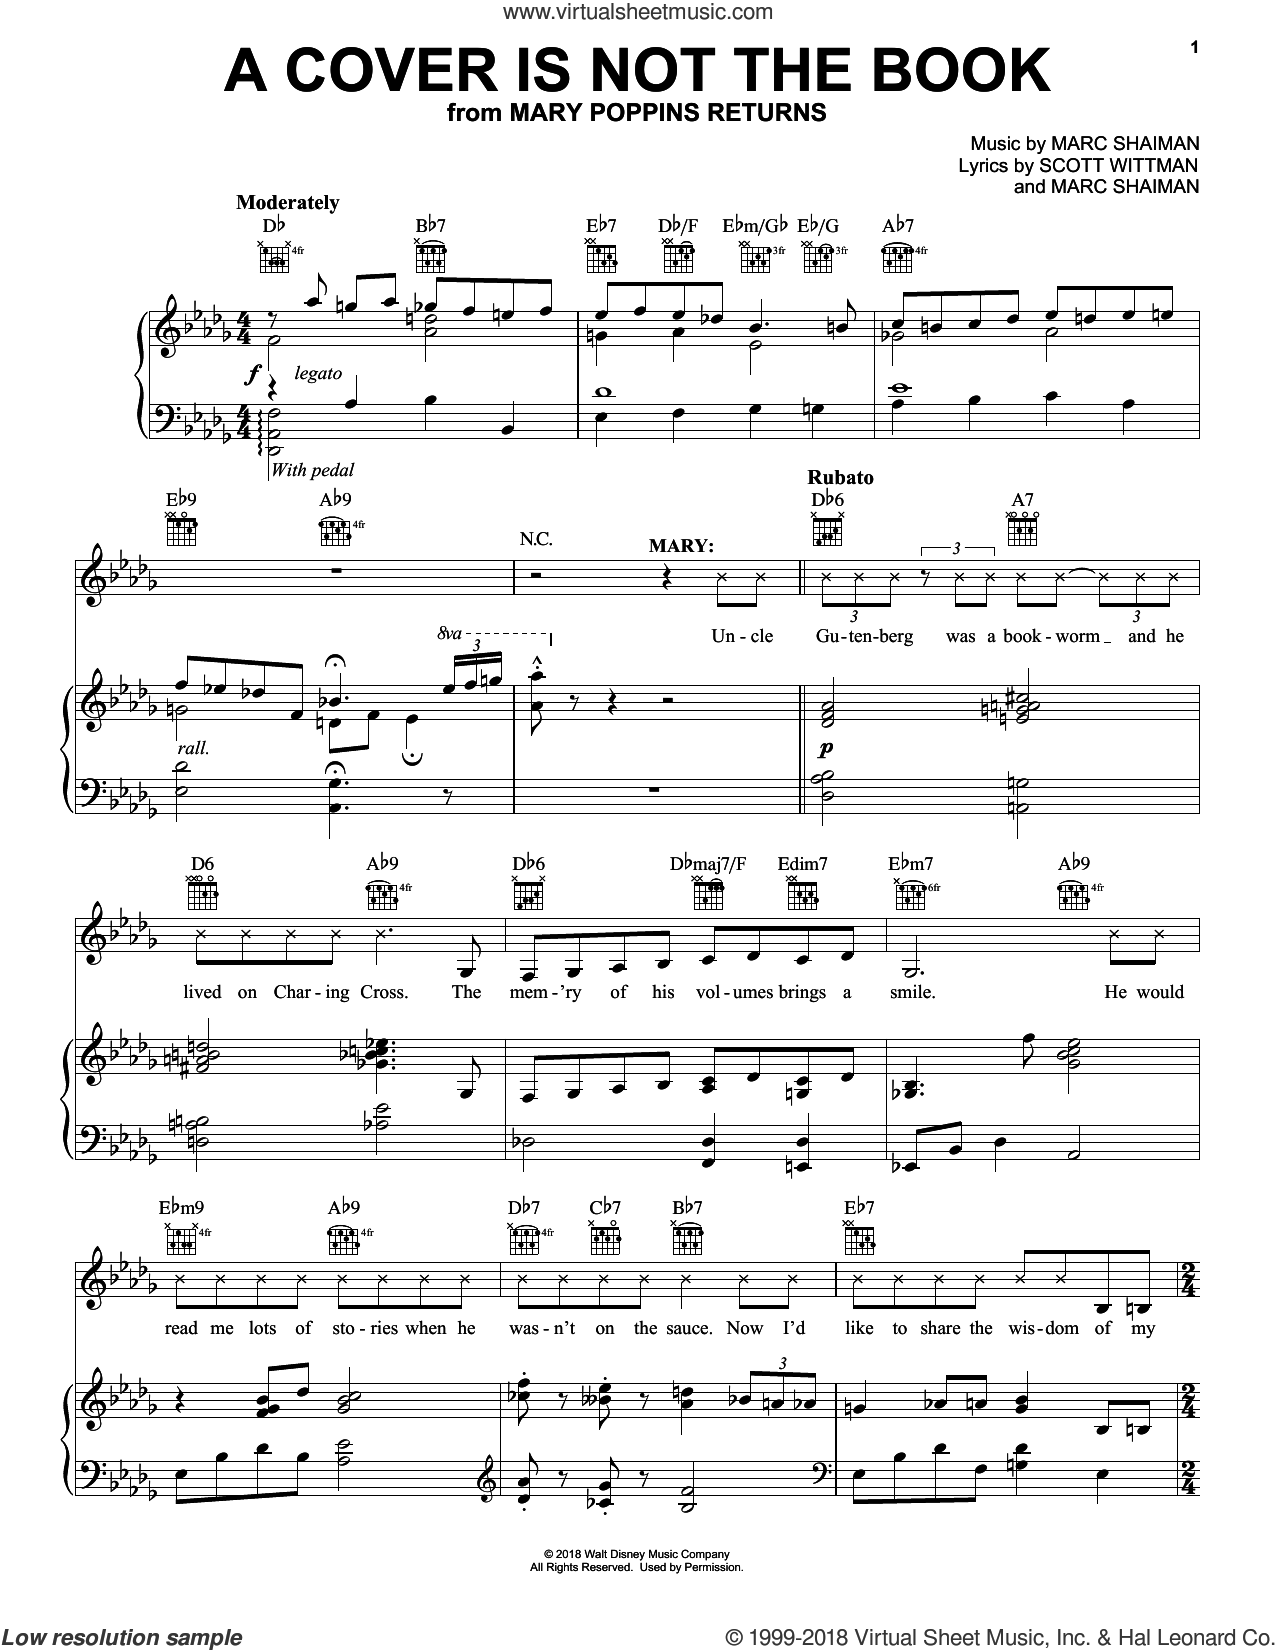 A Cover Is Not The Book (from Mary Poppins Returns) sheet music for voice, piano or guitar by Emily Blunt, Lin-Manuel Miranda & Company, Marc Shaiman and Scott Wittman, intermediate skill level